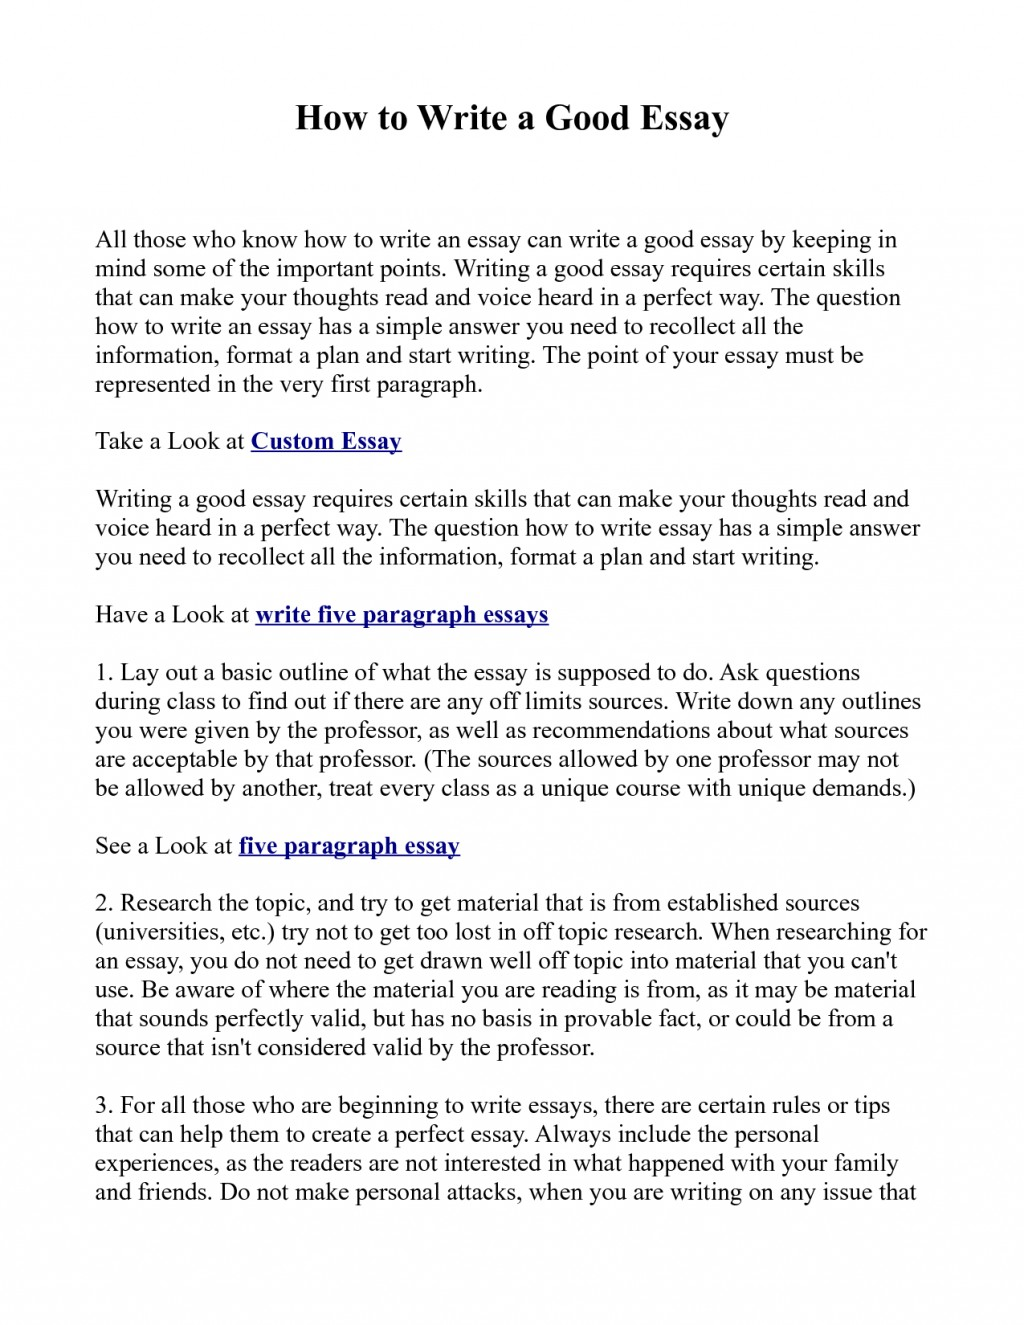 002 Ex1id5s6cl How To Essays Essay Excellent Write An Expository For 4th Grade Make Longer With Words Start Introduction Large